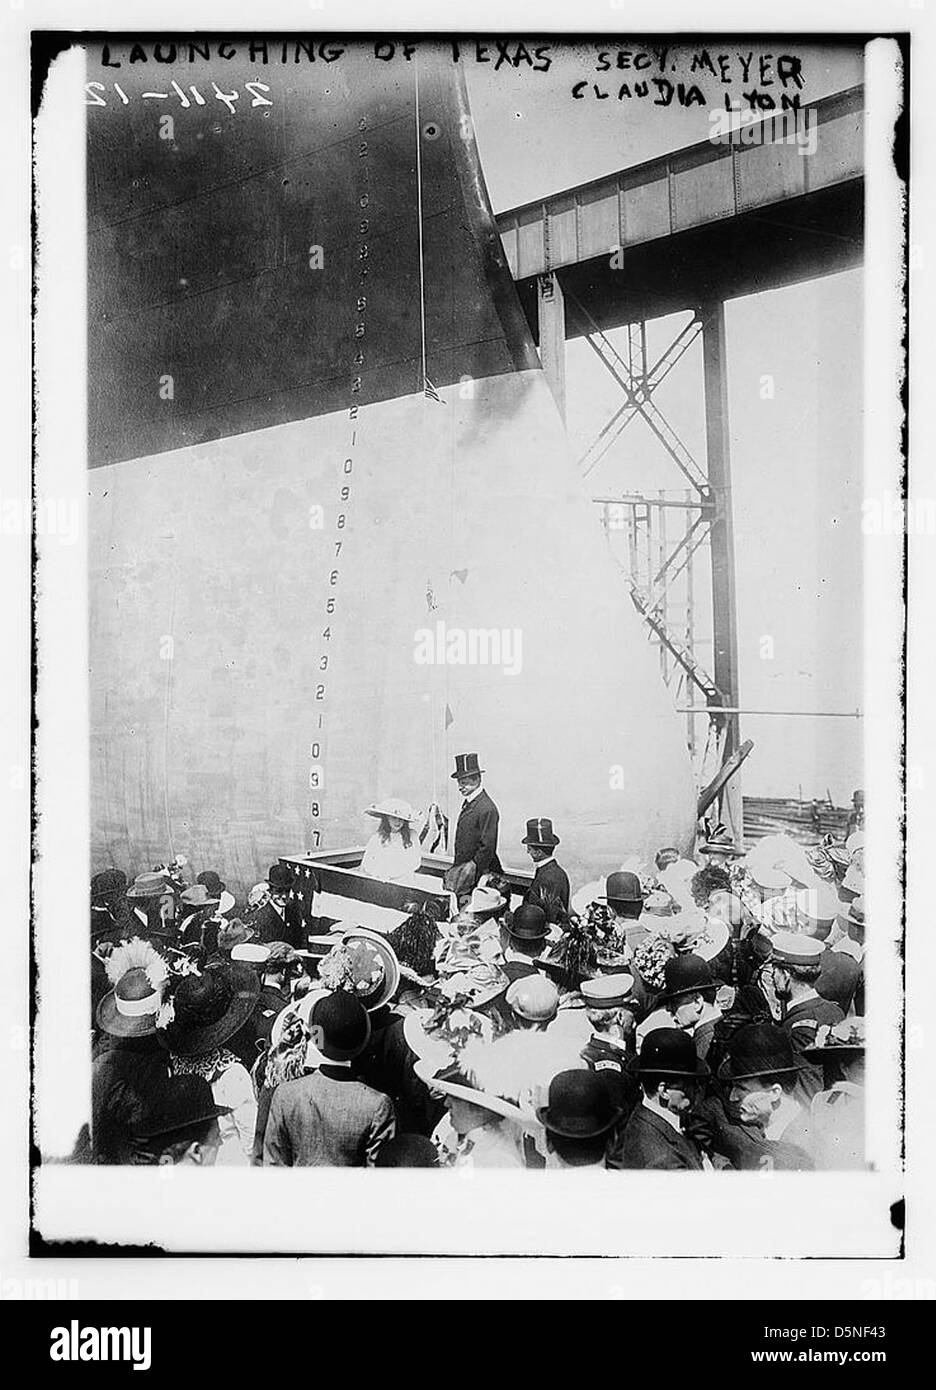 Launching of TEXAS - Secy Meyer [and] Claudia Lyon (LOC) - Stock Image